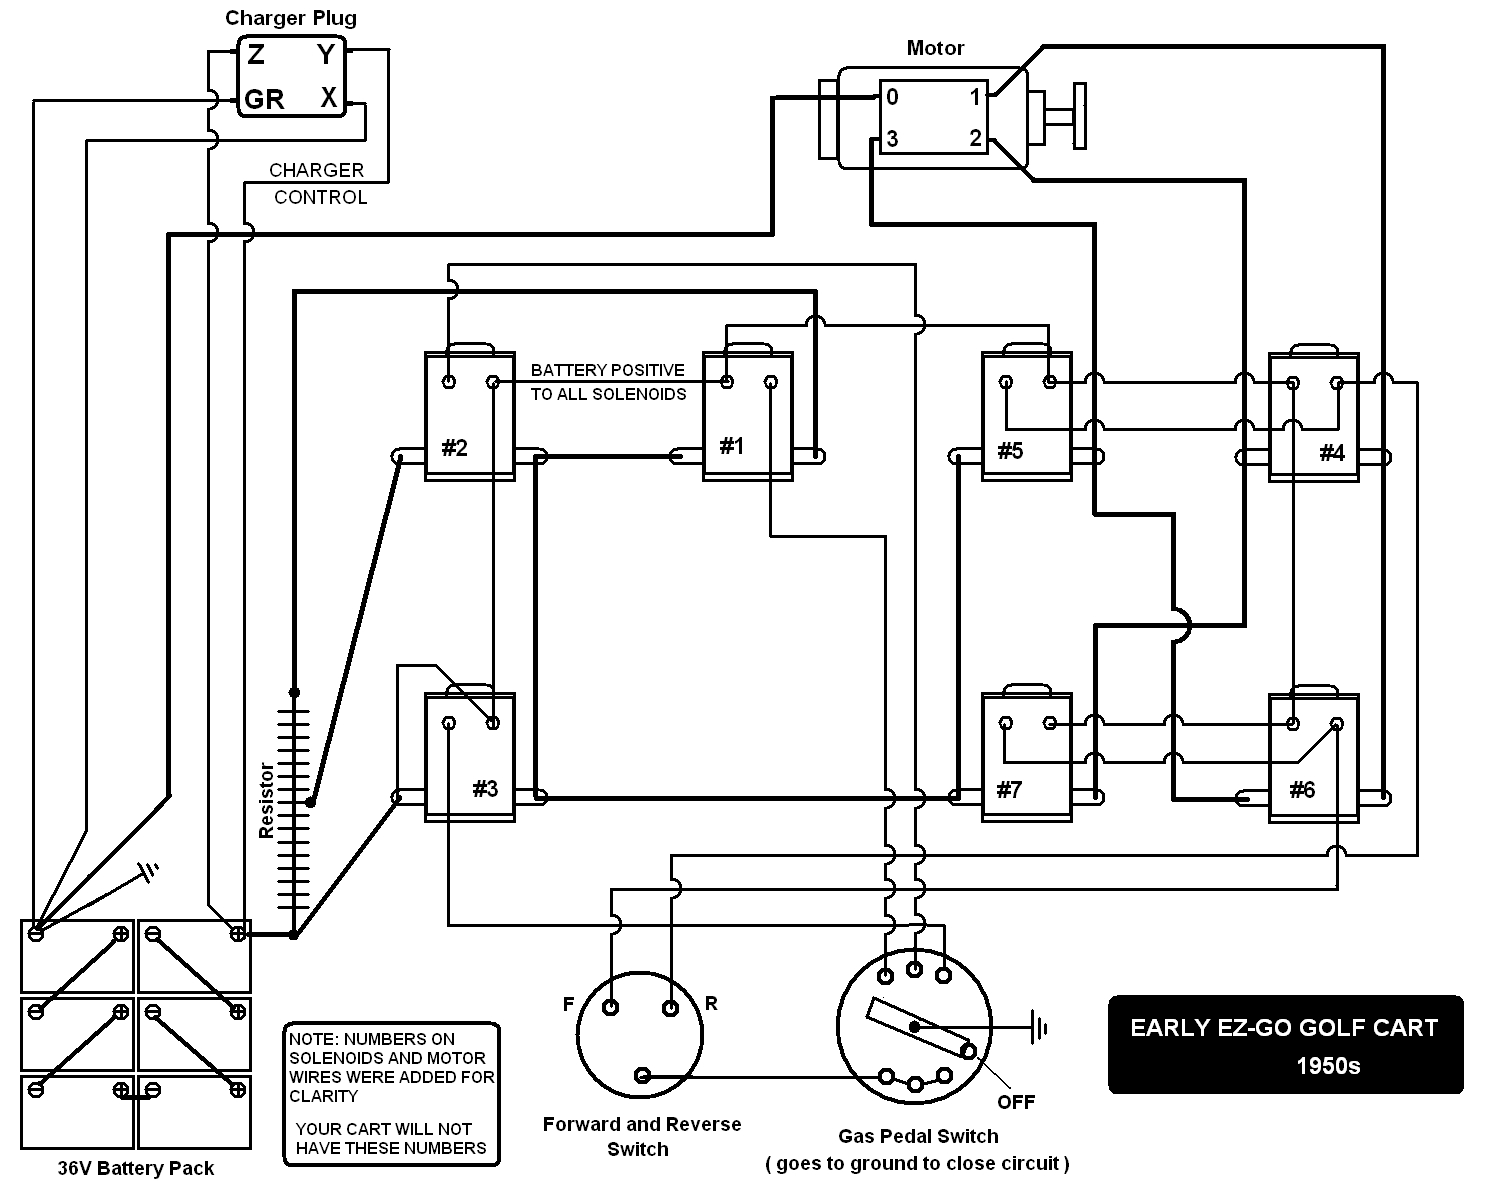 Wiring Diagram 2005 Ezgo Gas Golf Cart Auto Electrical Want To Hot Wire A 91 Elec Ez Go Was No Key Switch Or Wires